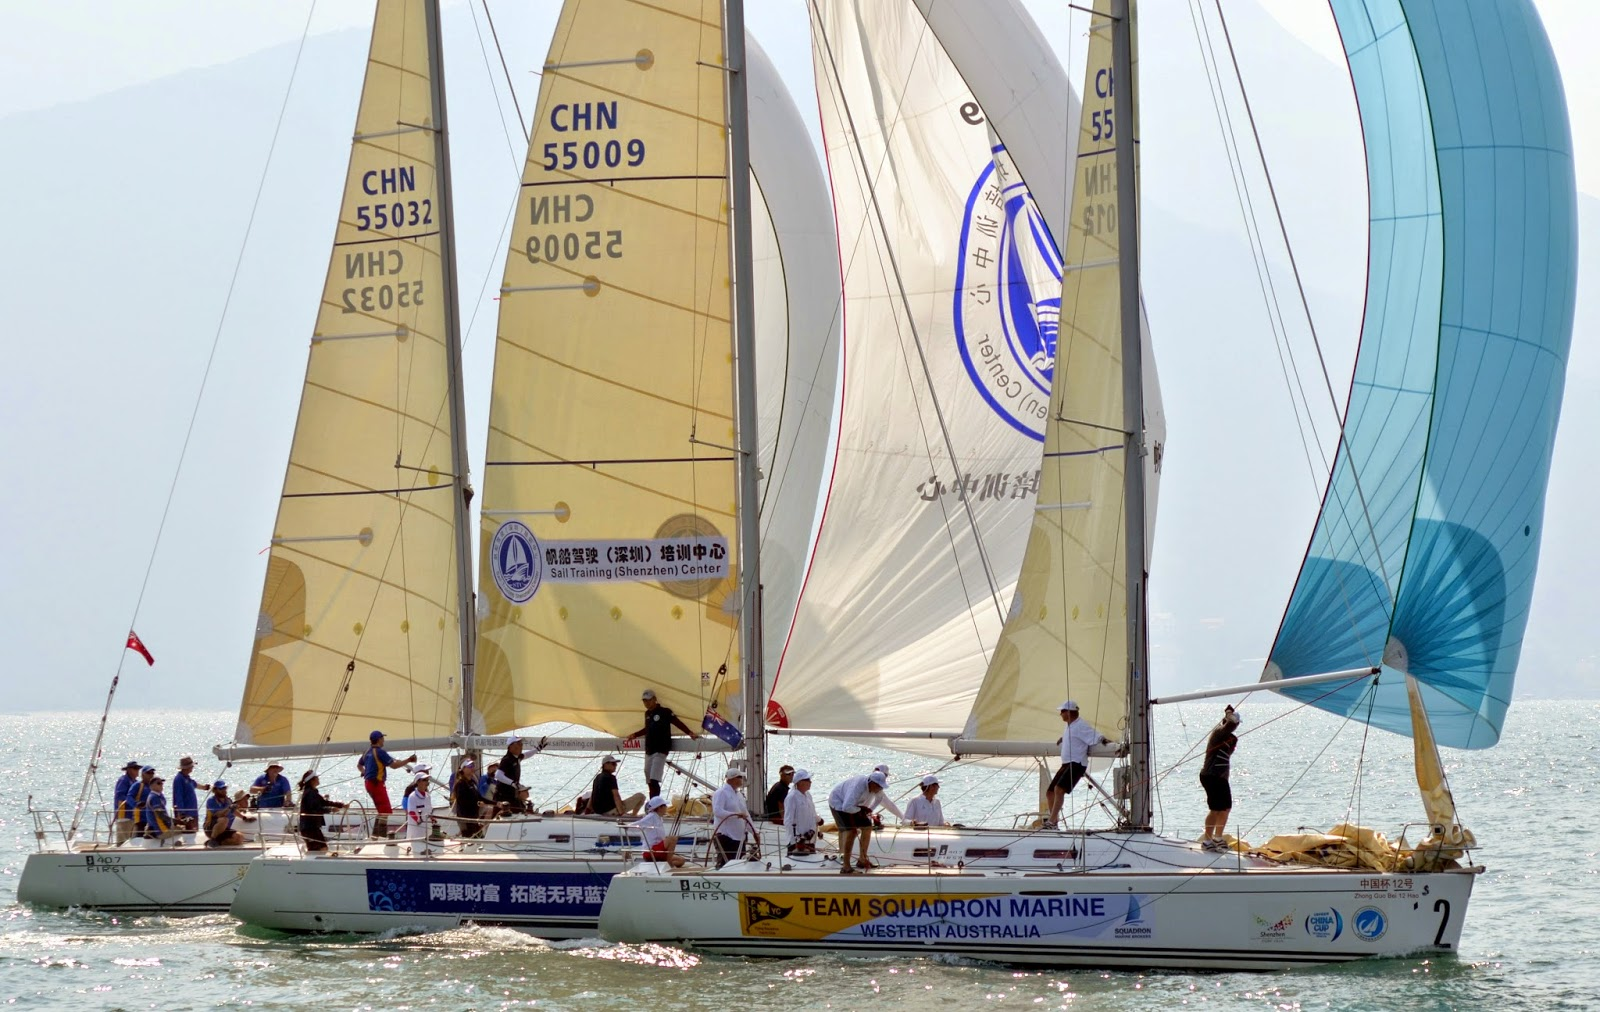 http://asianyachting.com/news/ChinaCup14/China_Cup_14_Pre-Regatta_Report.htm